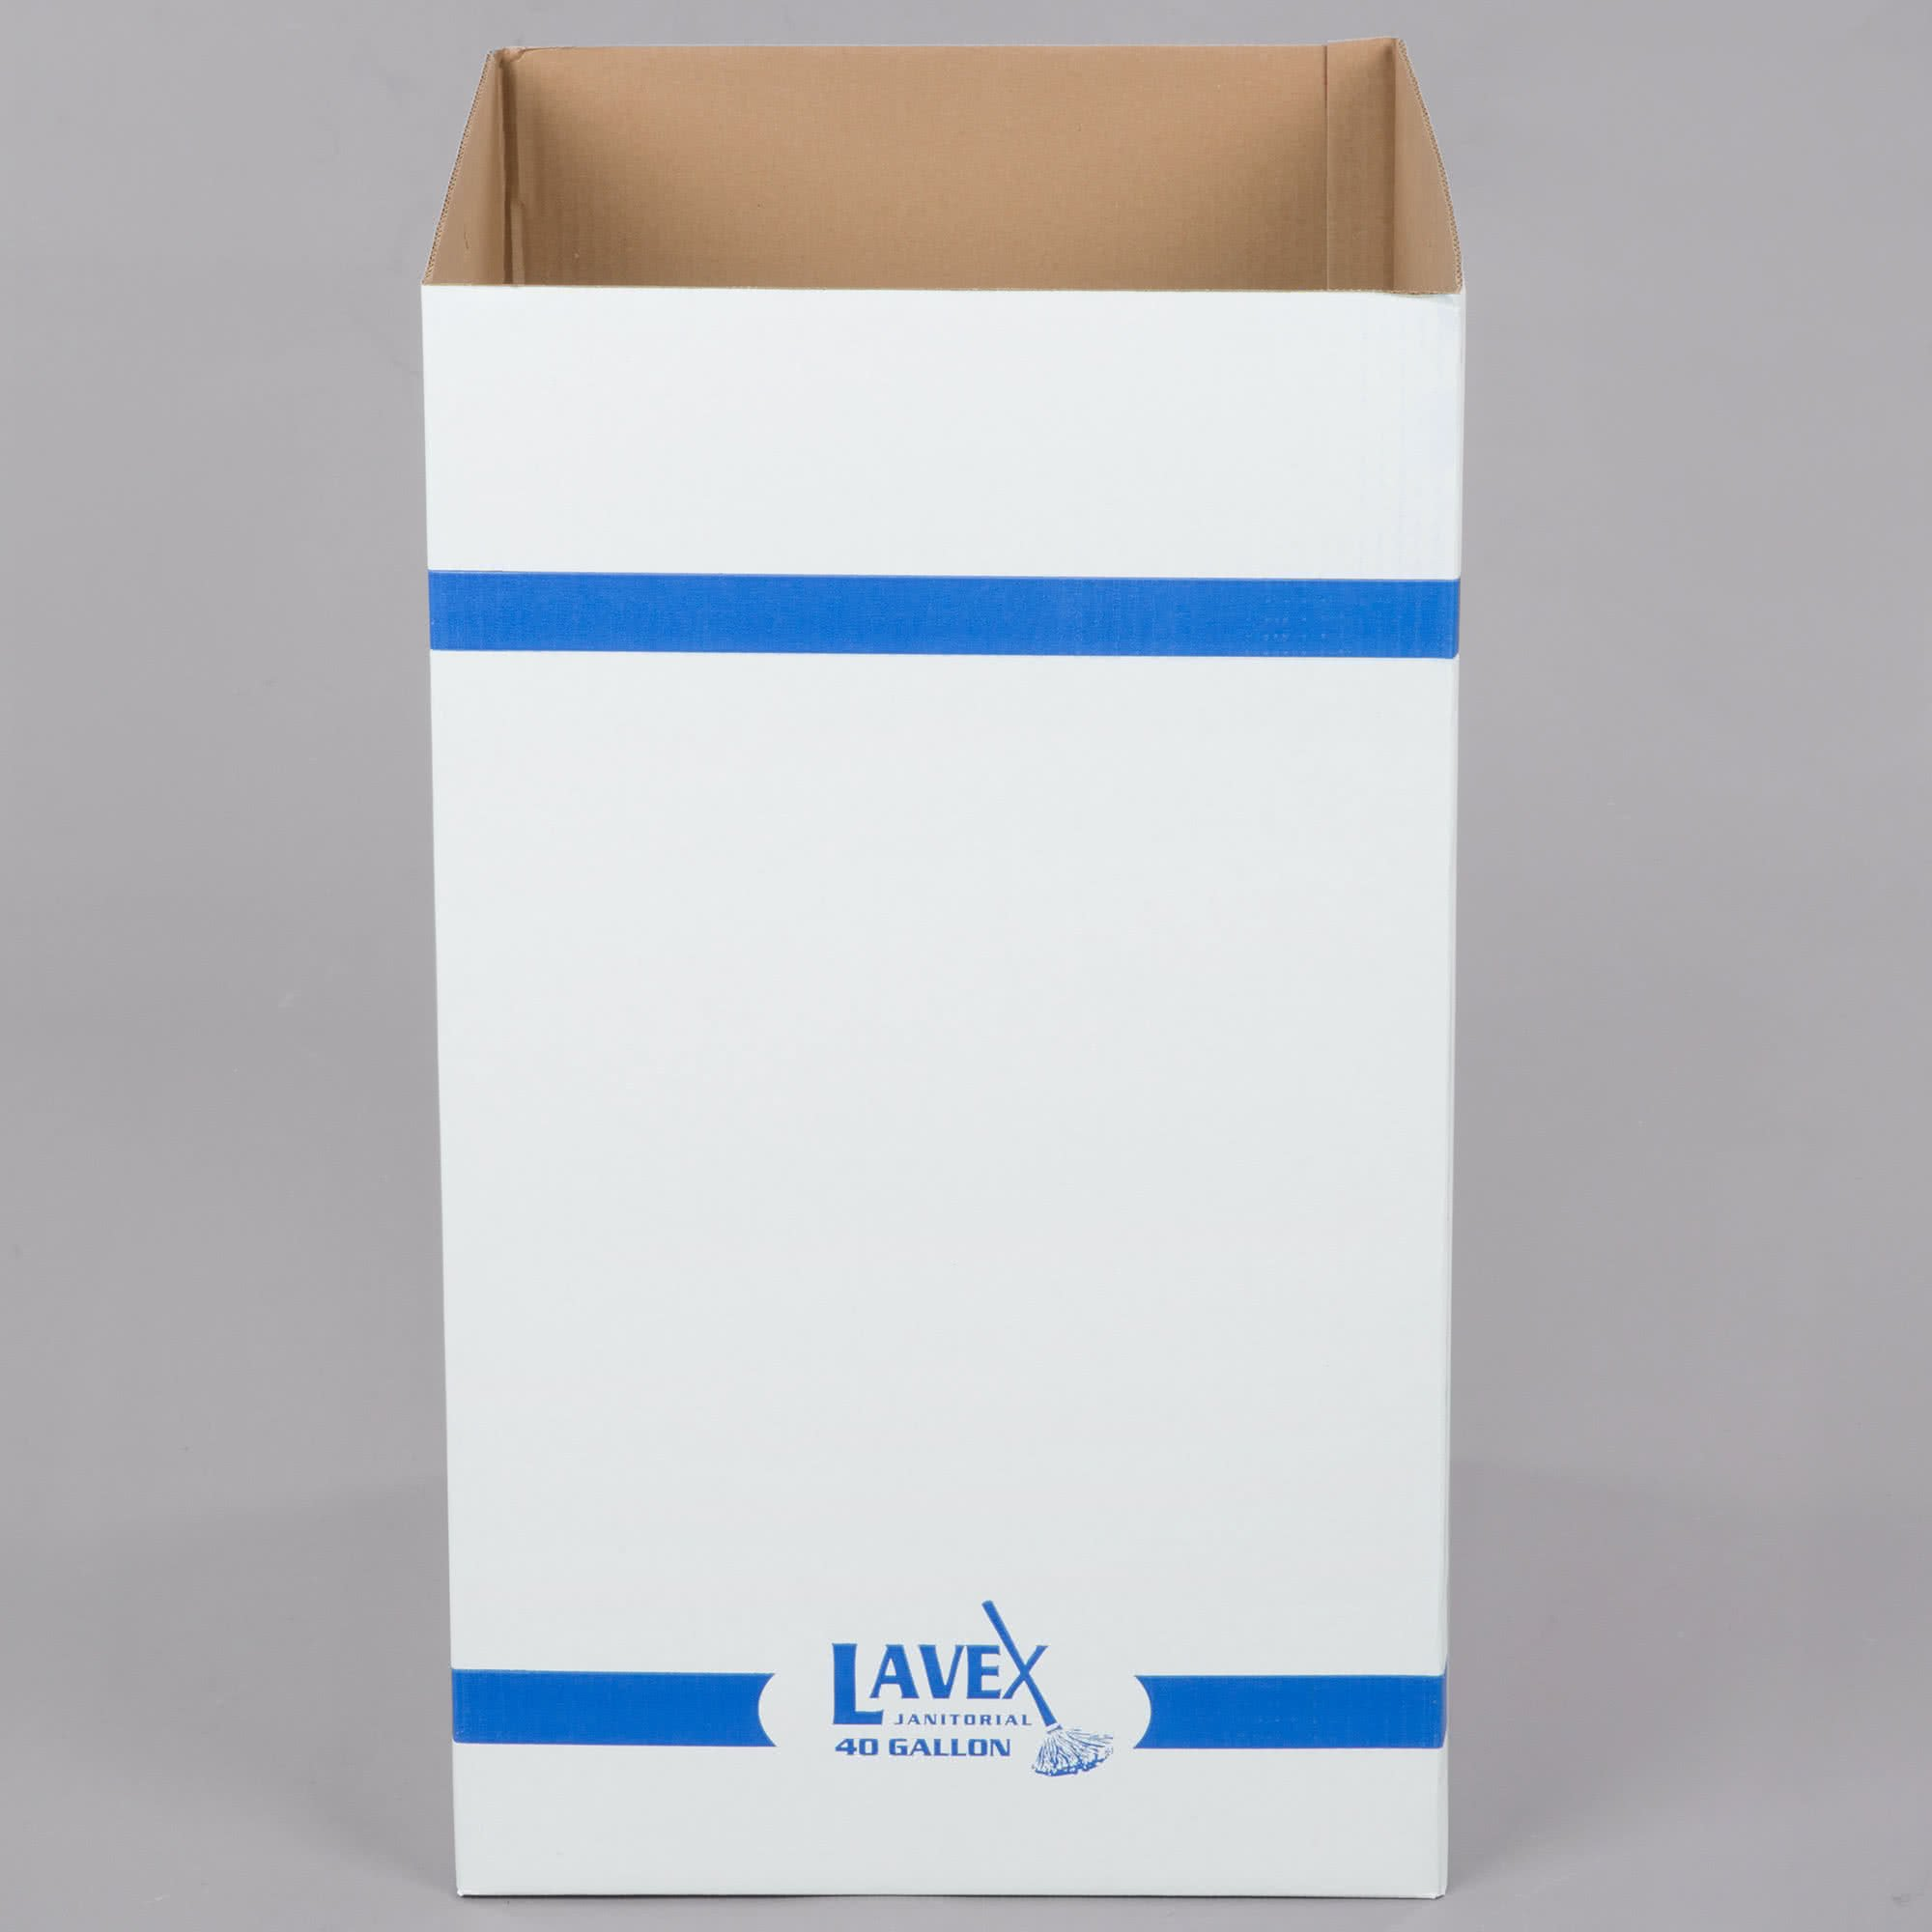 TableTop King 40 Gallon White Corrugated Cardboard Trash and Recycling Container - 2/Pack